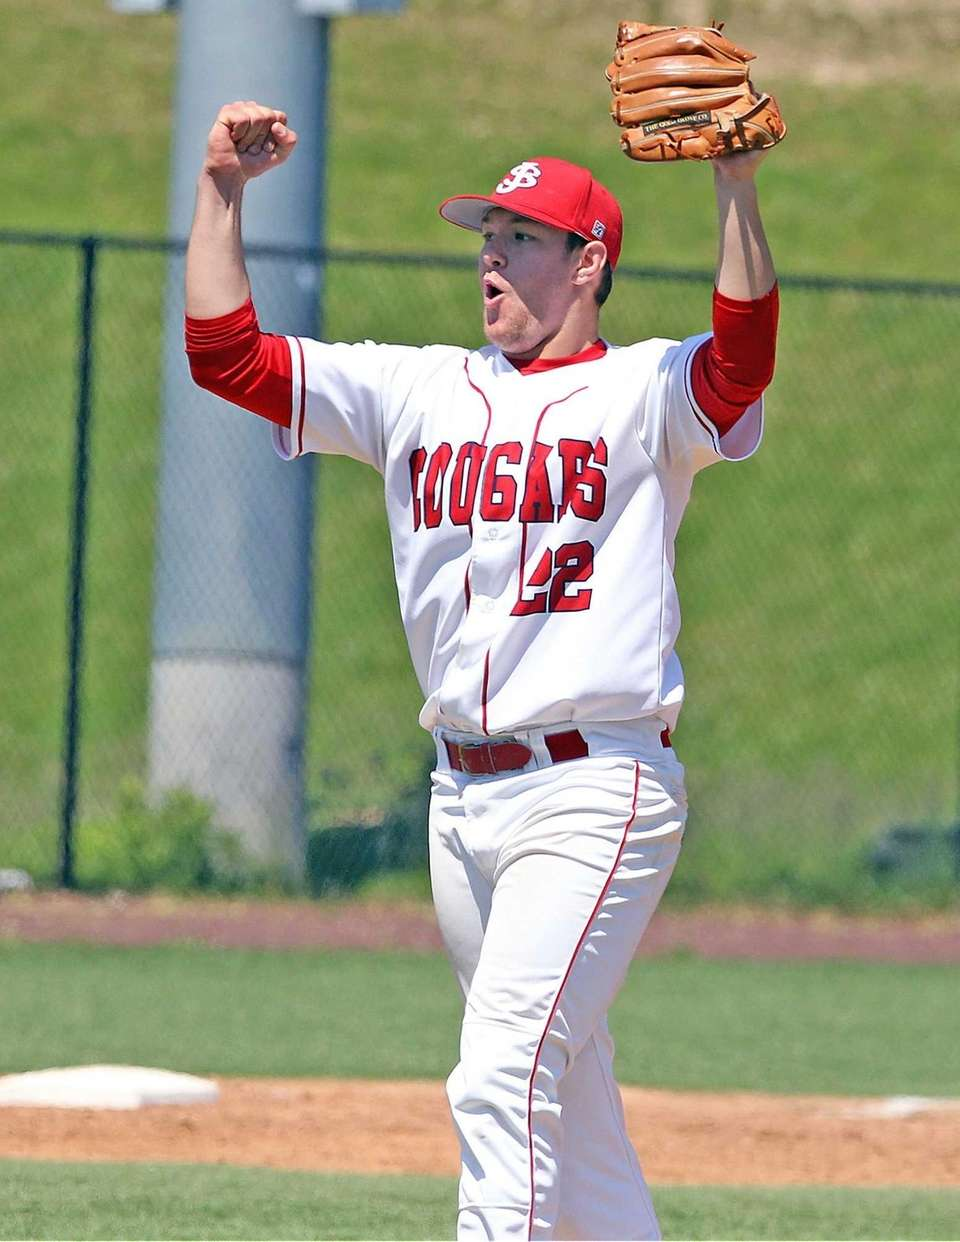 St. John the Baptist's pitcher Gregory Egan celebrates